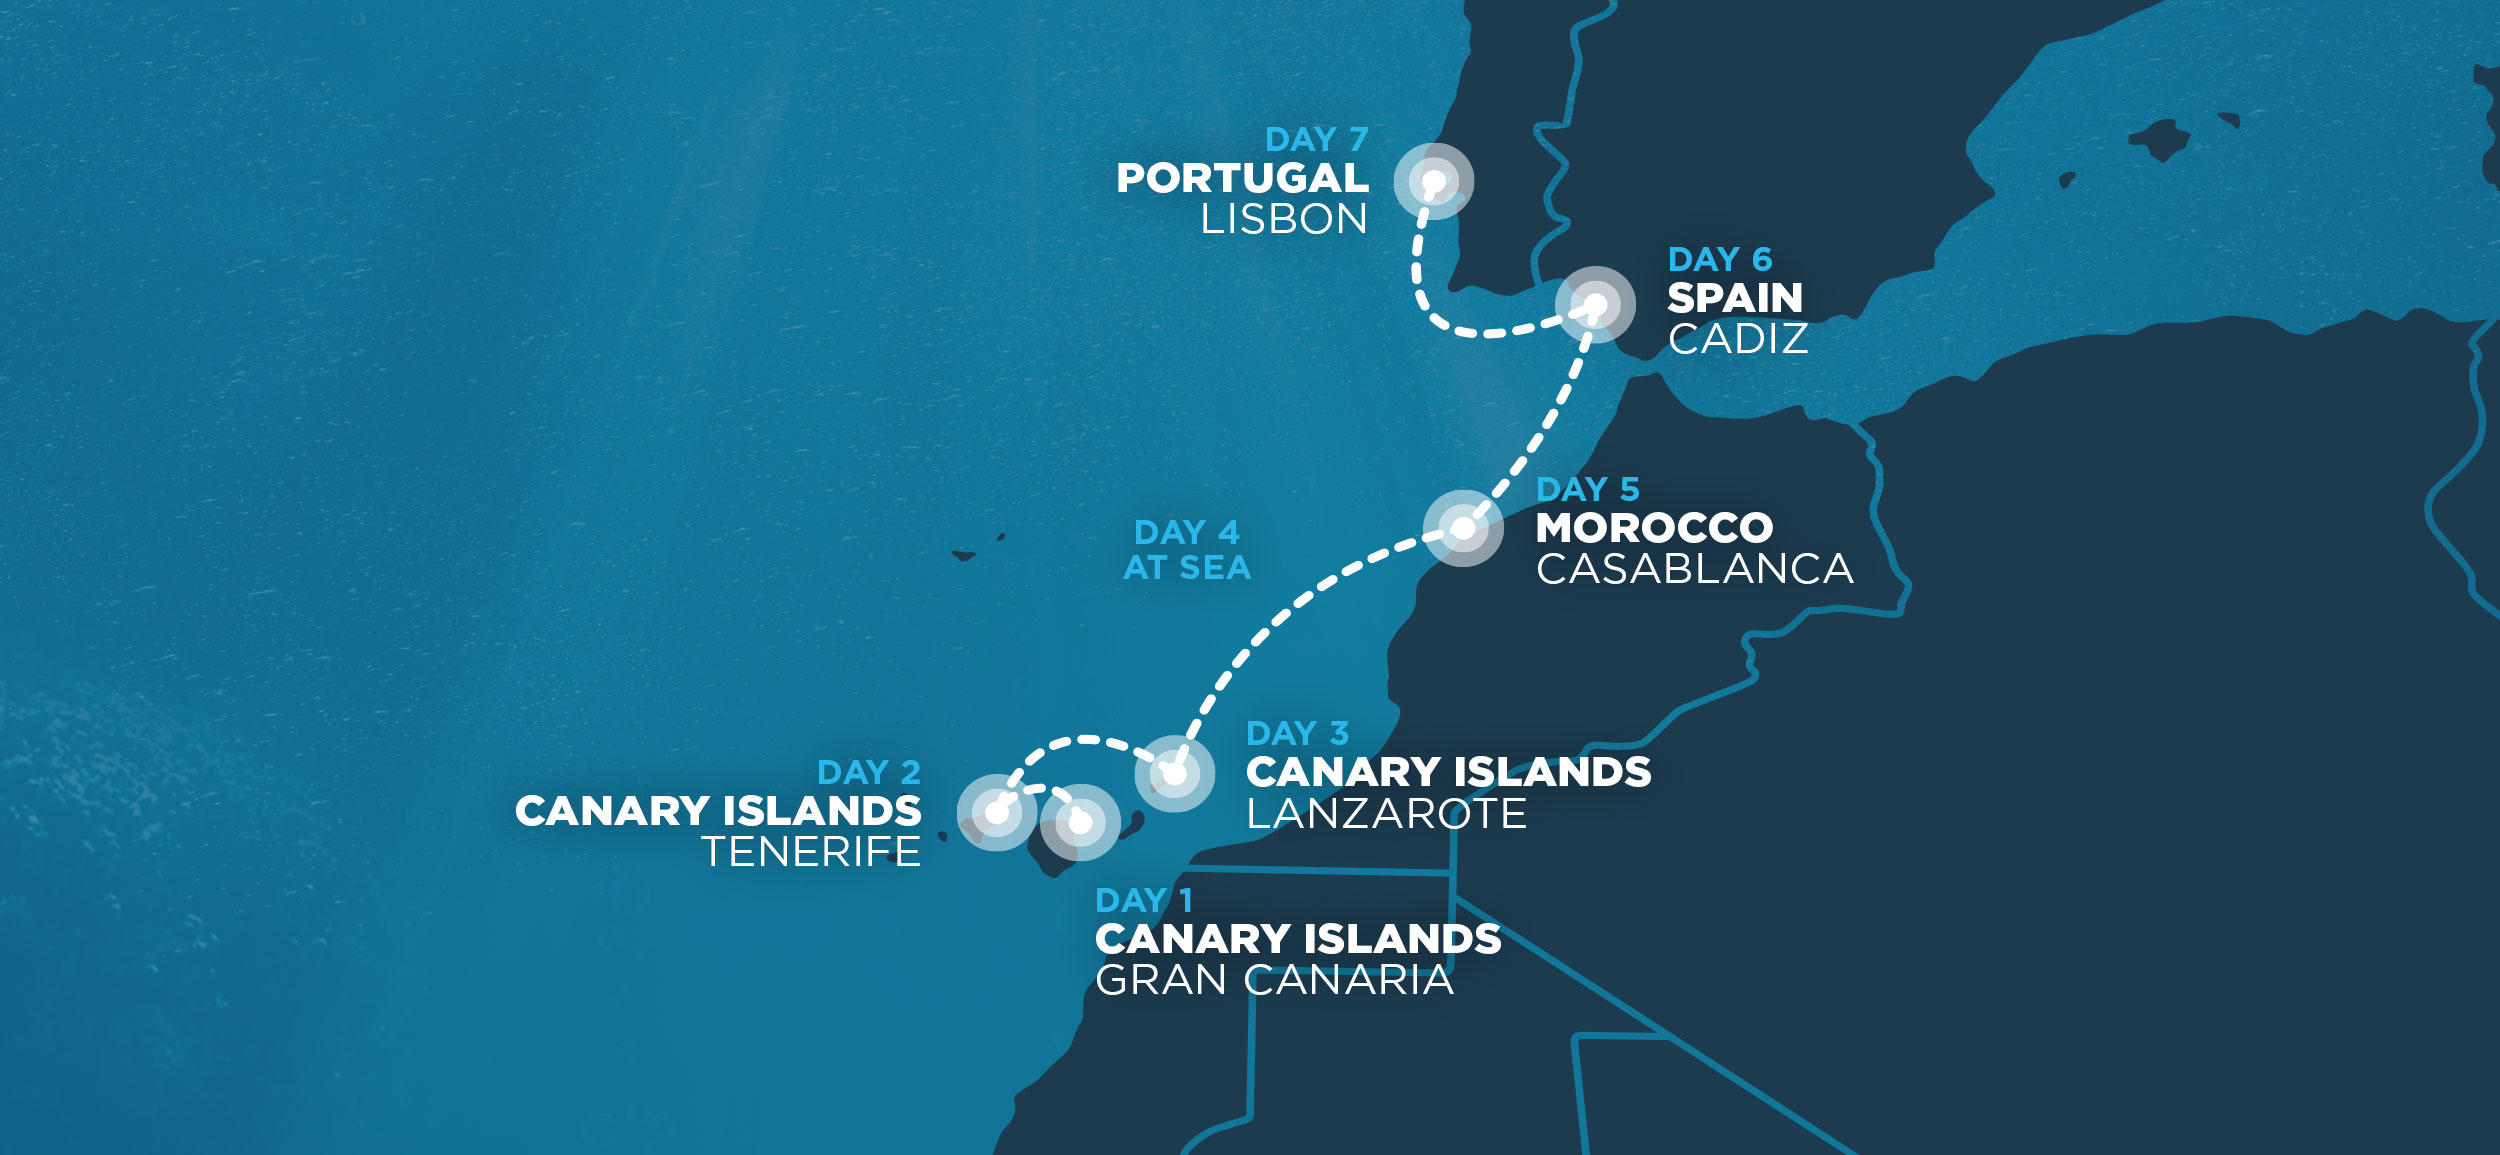 Map Of Spain Gran Canaria.Nomad Cruise 8 Sail From Spain To Portugal With 200 Digital Nomads